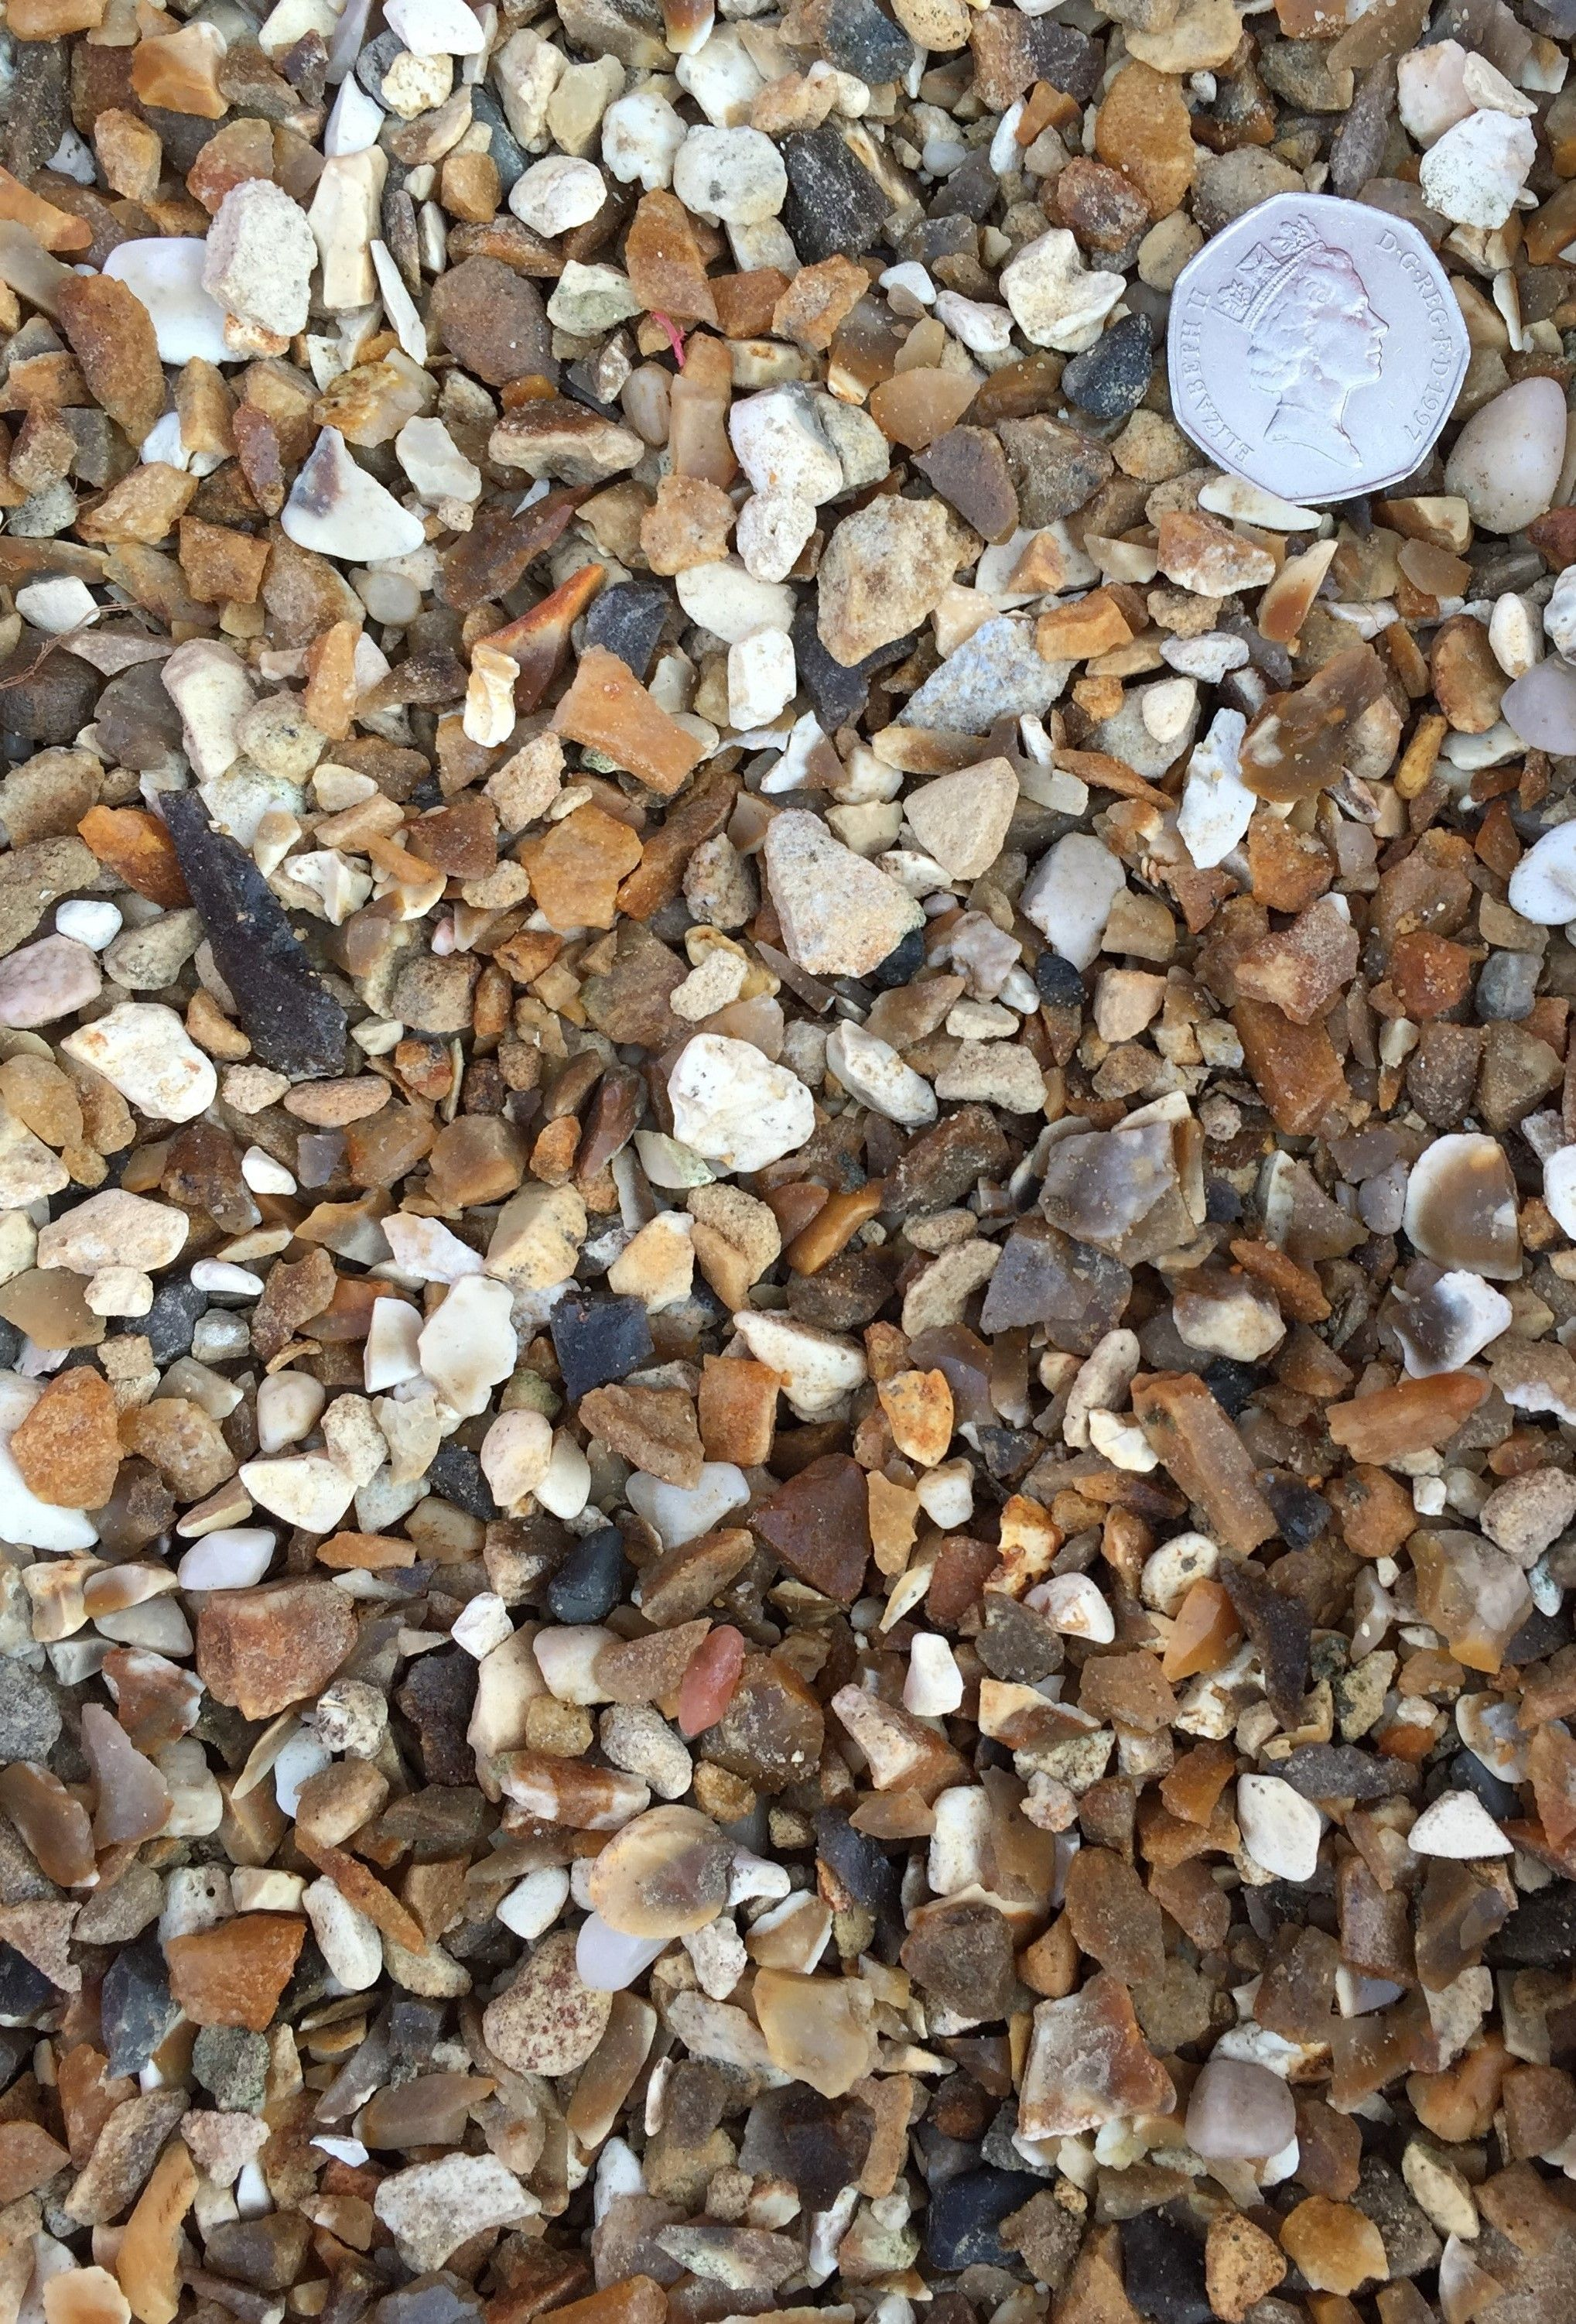 10-6mm Flint Gravel as seen dry with scale provided ...